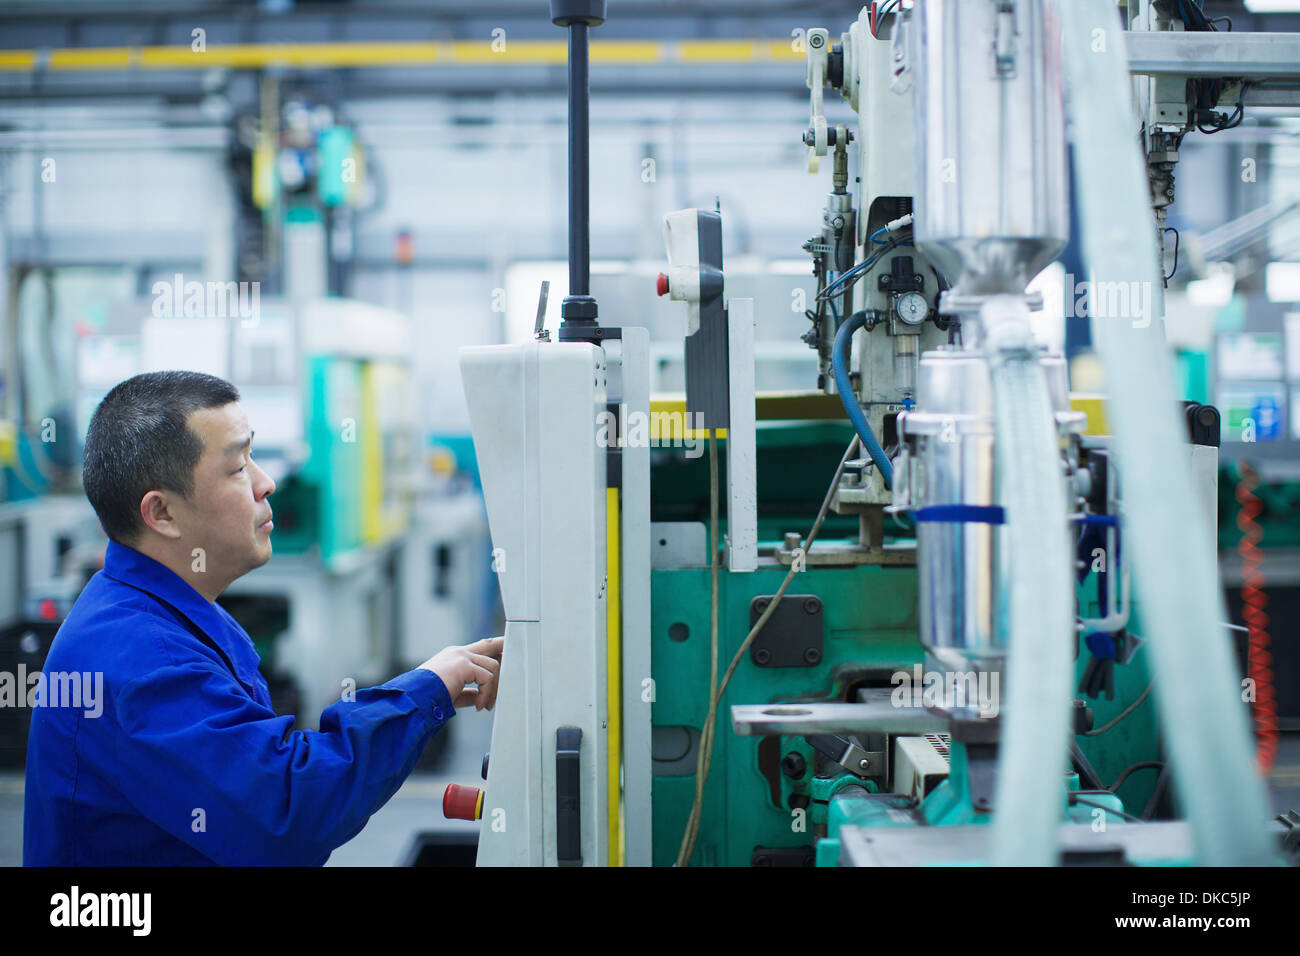 Worker at small parts manufacturing factory in China, pressing button on control panel - Stock Image